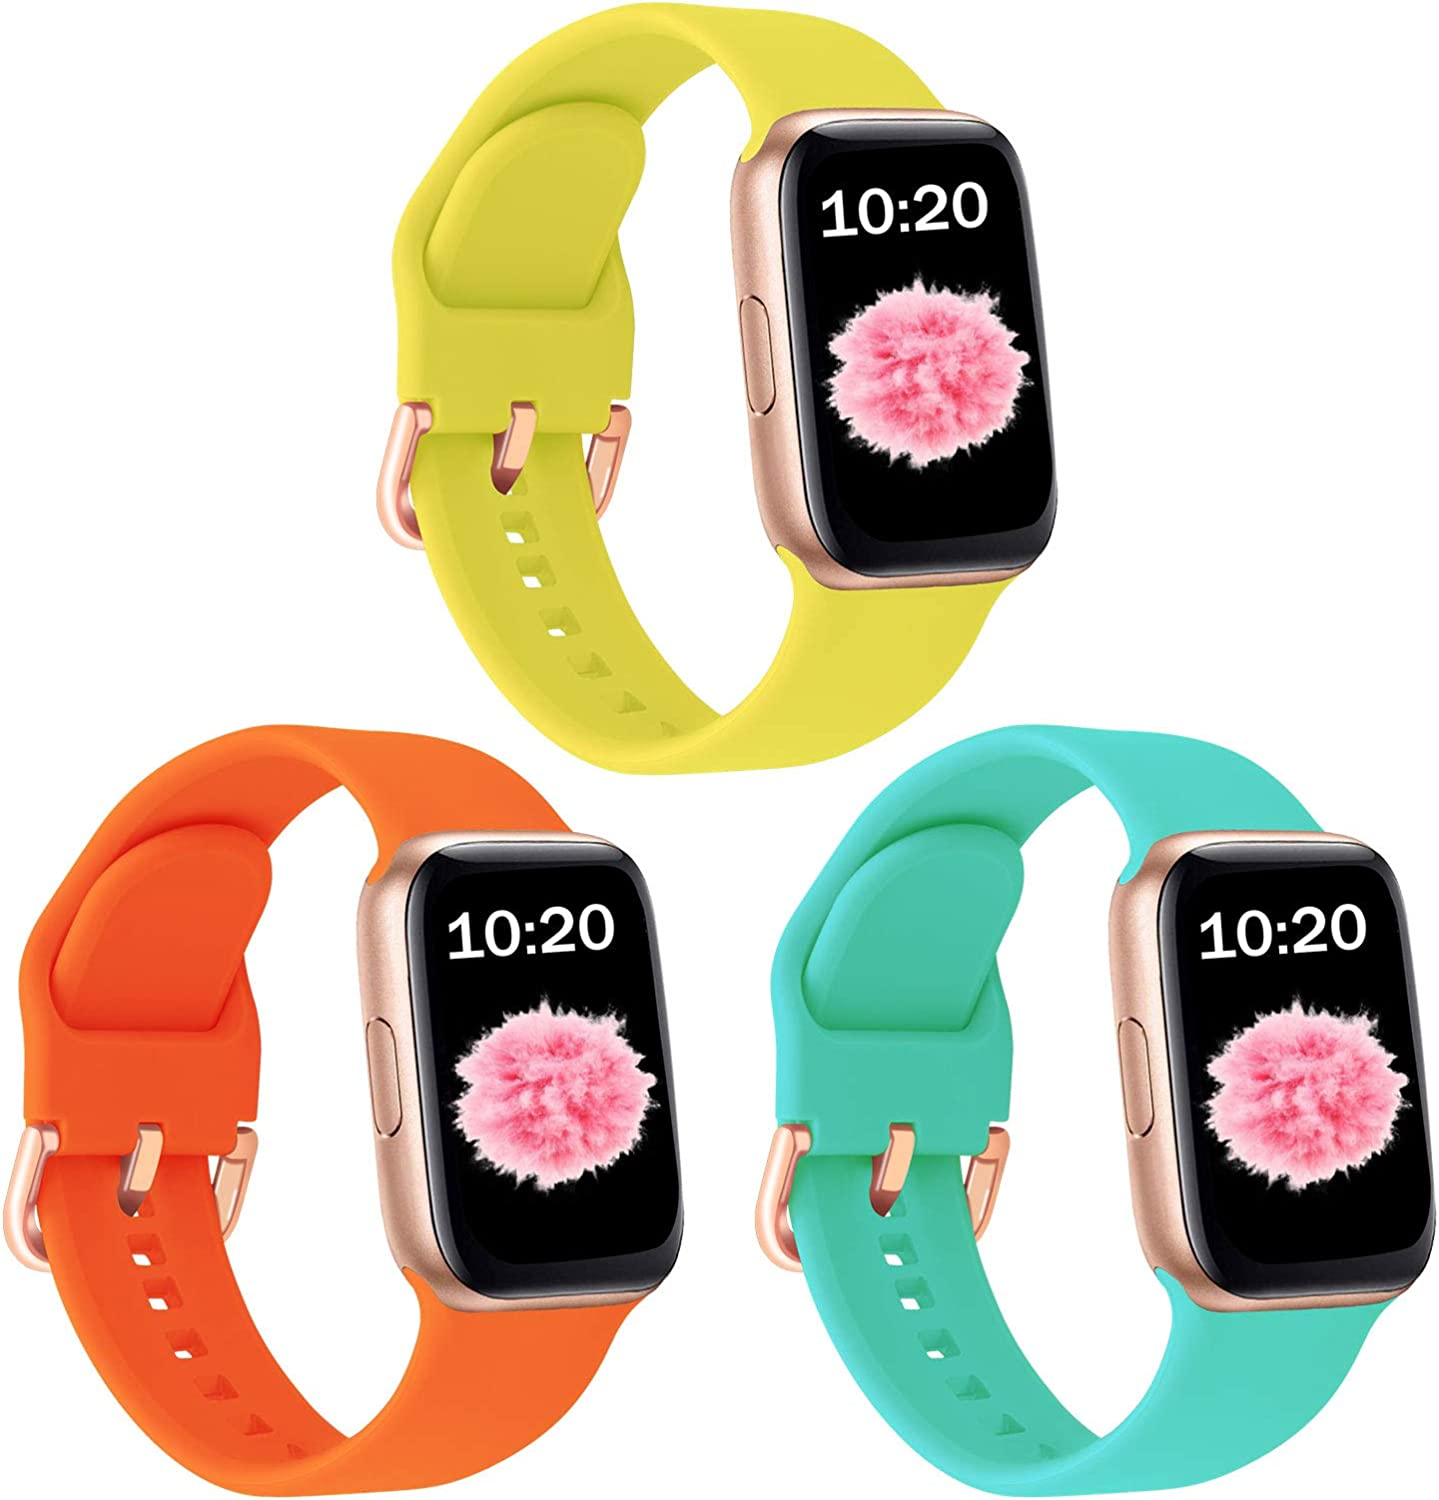 SinJonden 3-Pack Bands Compatible with Apple Watch 42mm 44mm 38mm 40mm, Silicone Bands with Rose Gold Buckle for iWatch Series SE/6/5/4/3/2/1 Women (42mm/44mm-M/L, Bright Yellow/Orange/Teal)